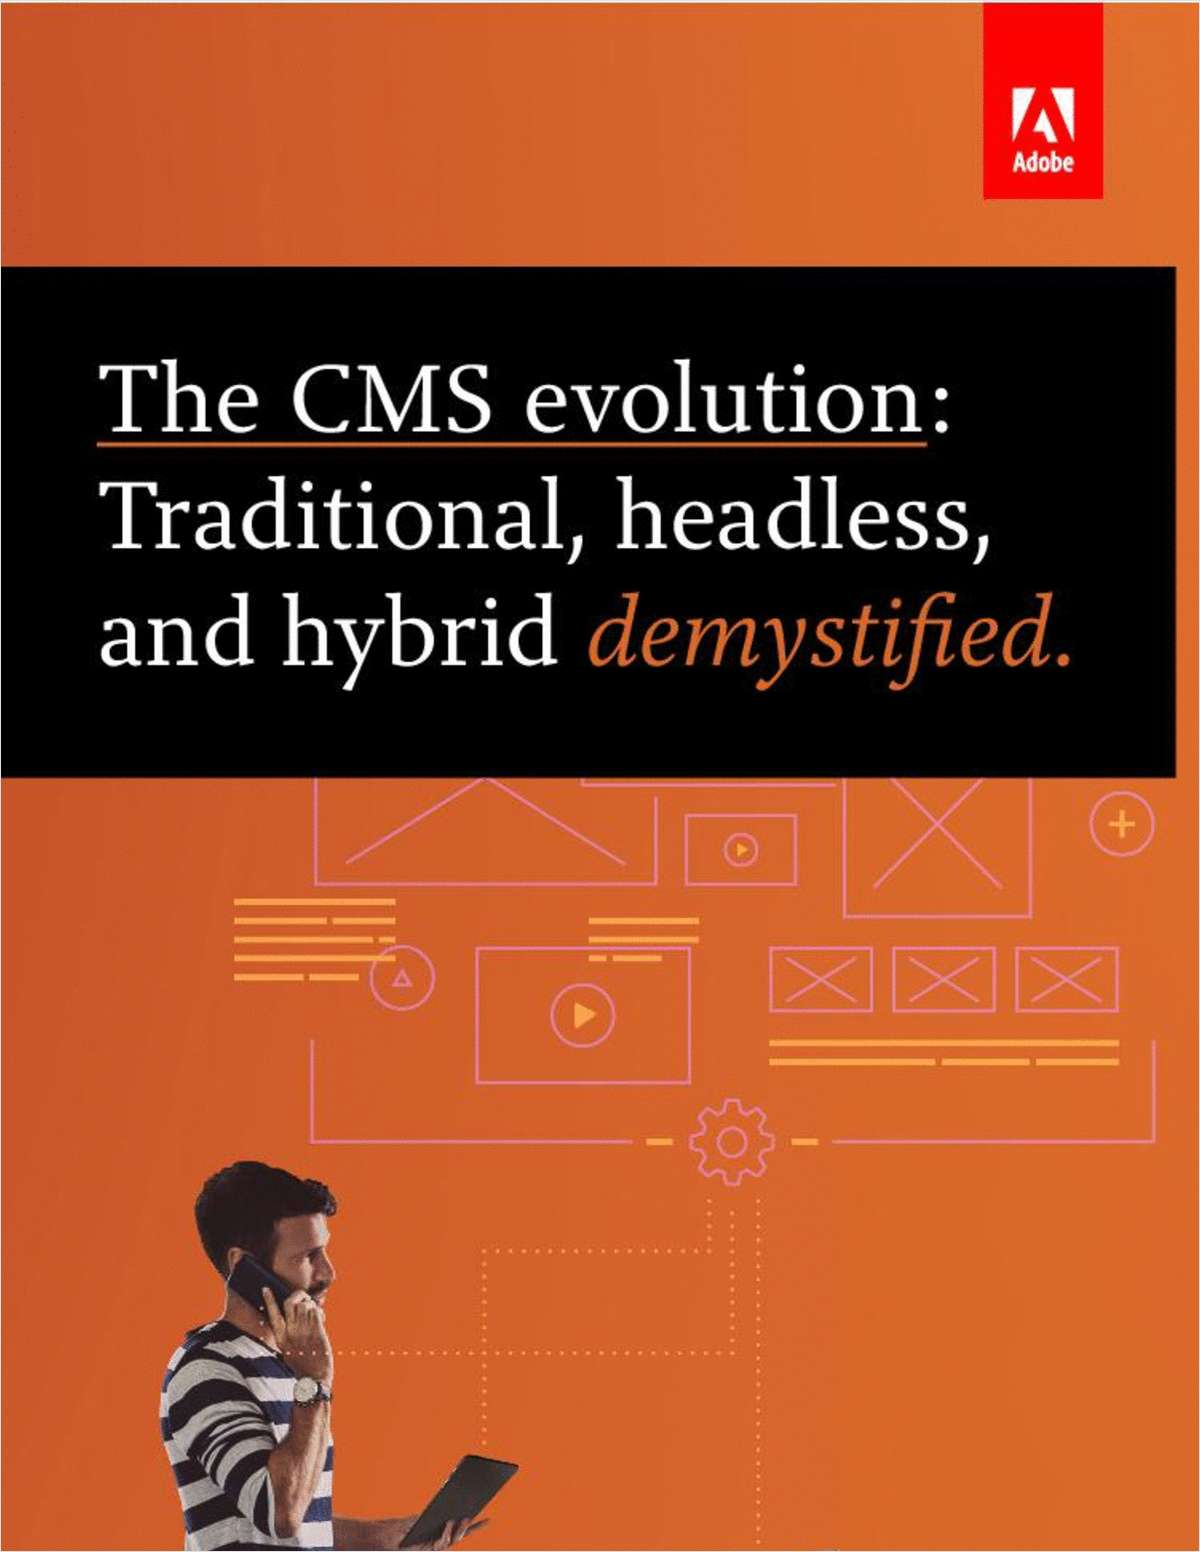 The CMS Evolution: Traditional, Headless, and Hybrid Demystified